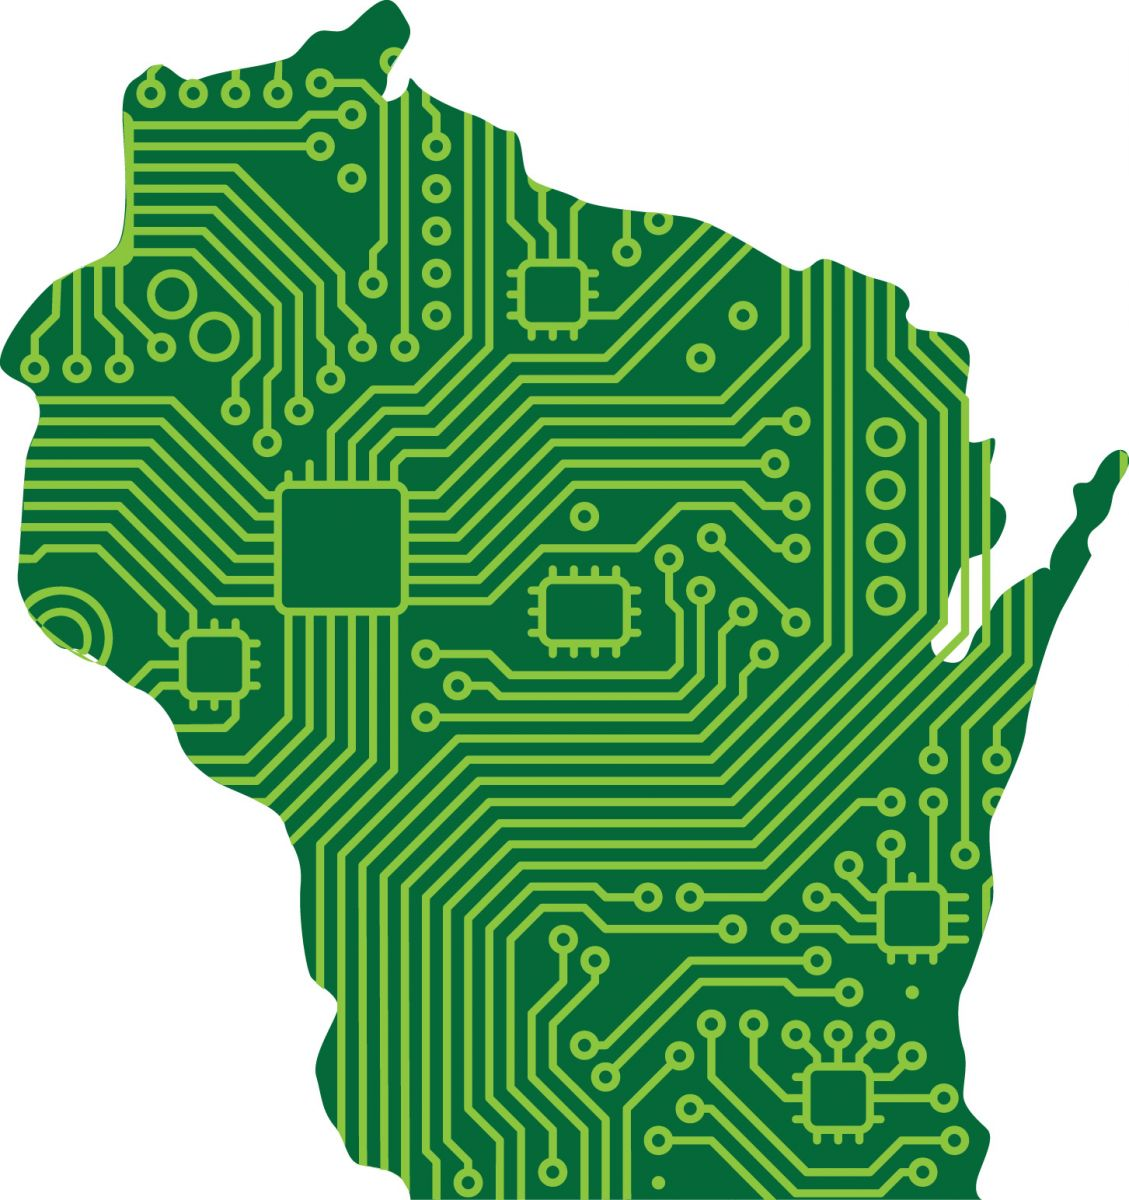 map of wisconsin with a circuit board design